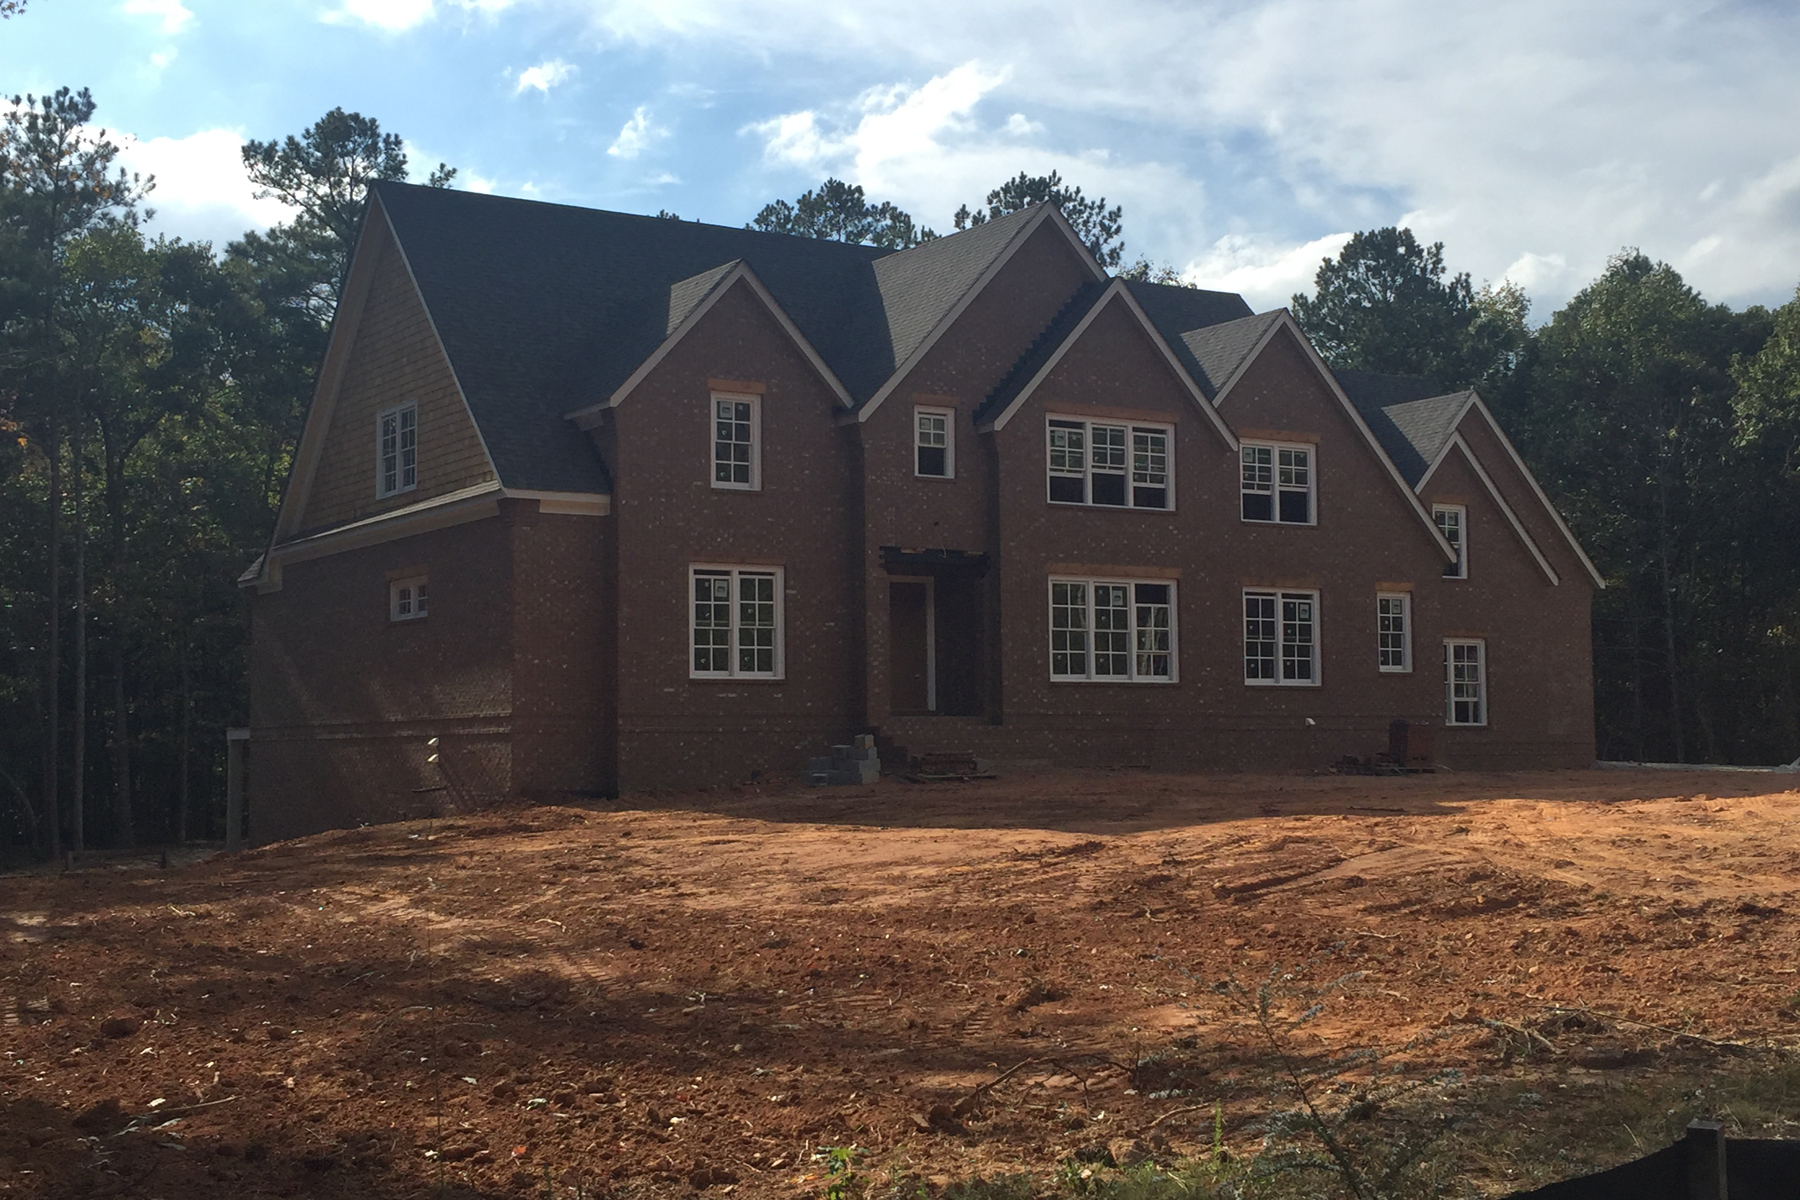 Maison unifamiliale pour l Vente à New Construction In McIntosh School District On Five Acres 205 Diamond Point Fayetteville, Georgia 30215 États-Unis